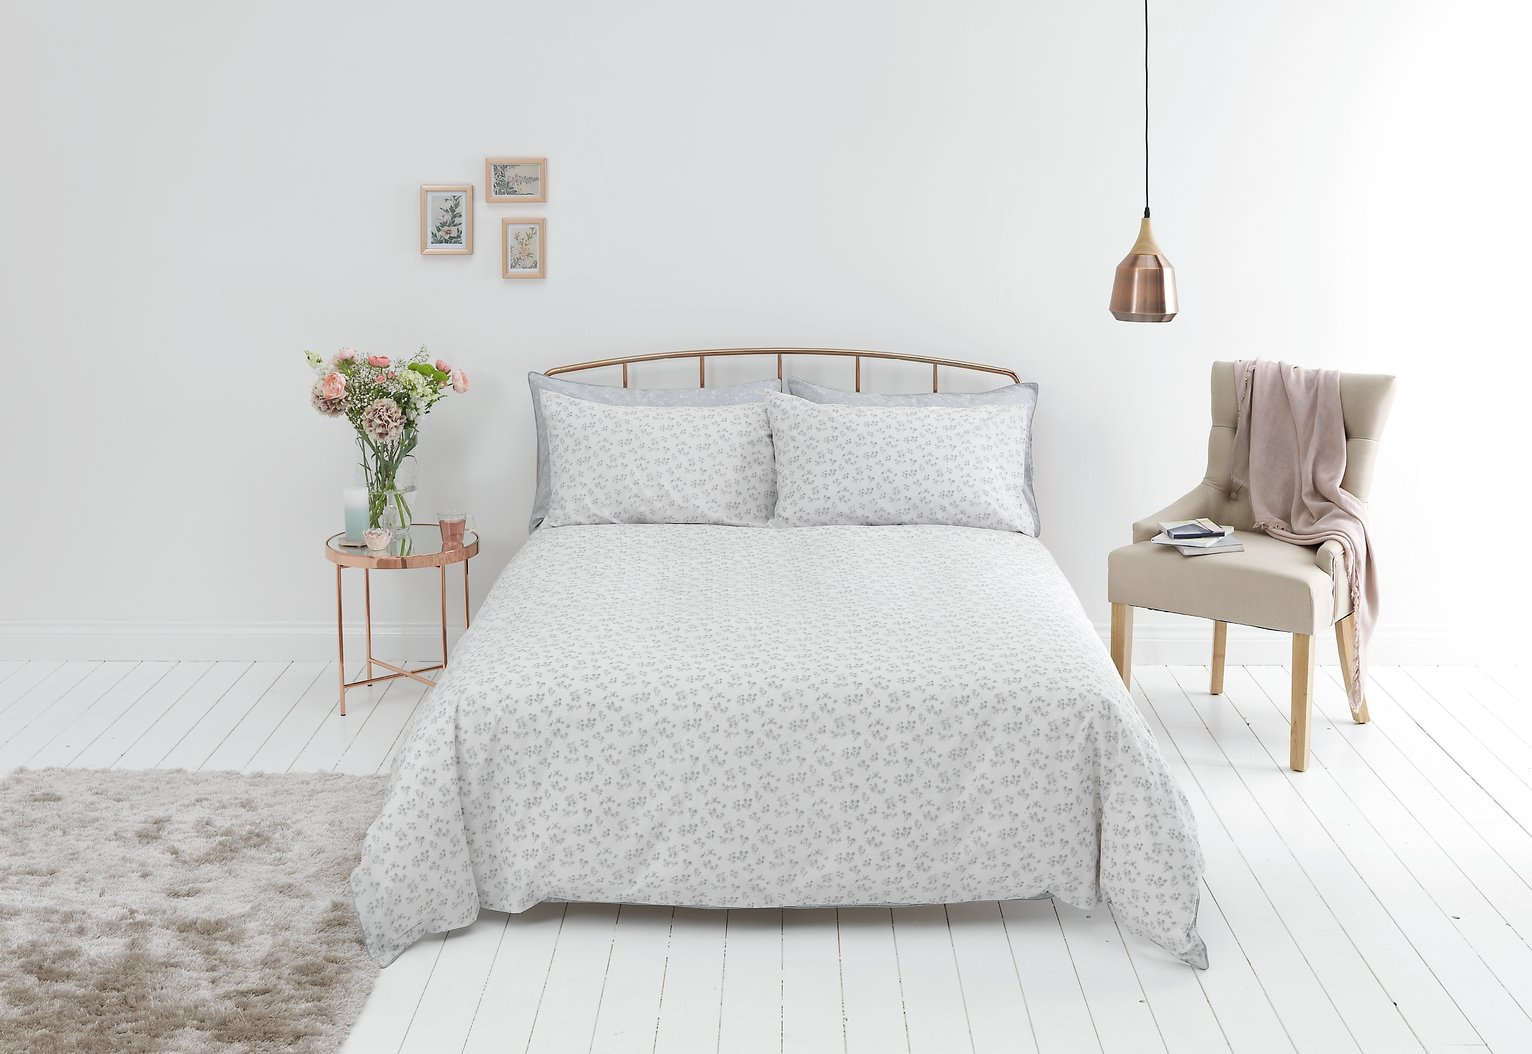 Sainsbury's Home Parisan Maison Floral Bedding Set - Single